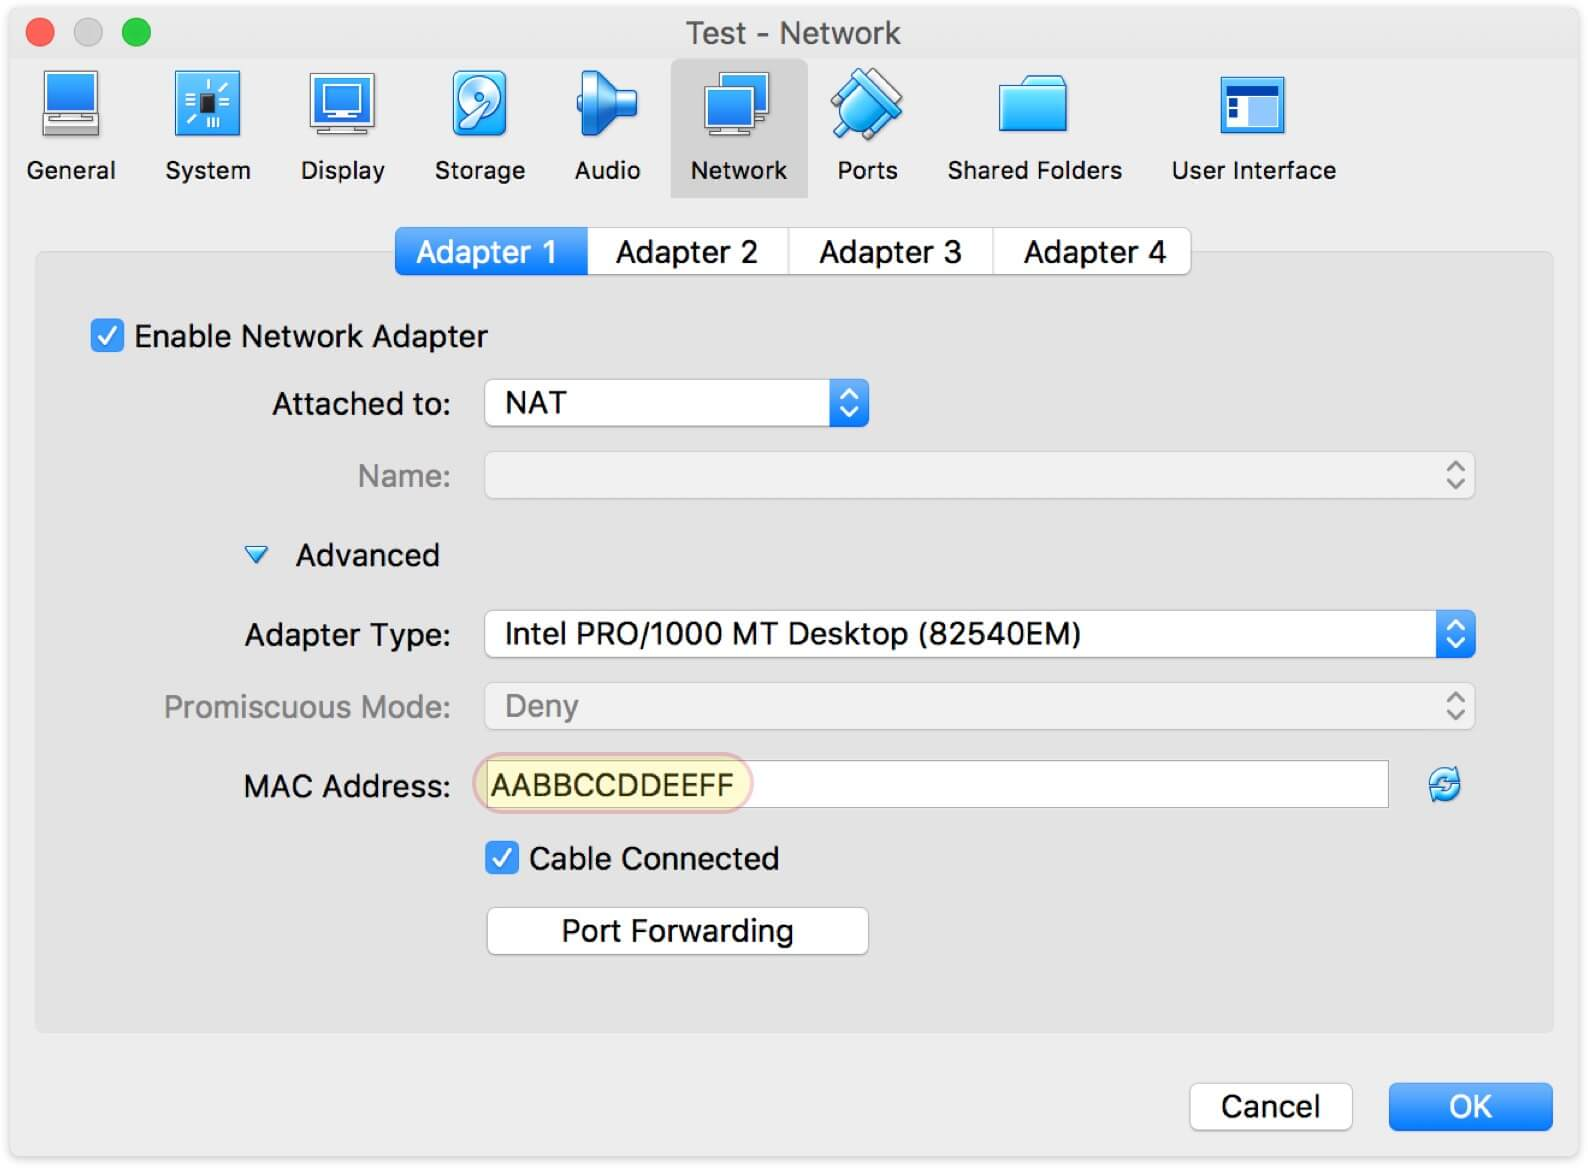 However, it's possible to set a custom MAC with any prefix.